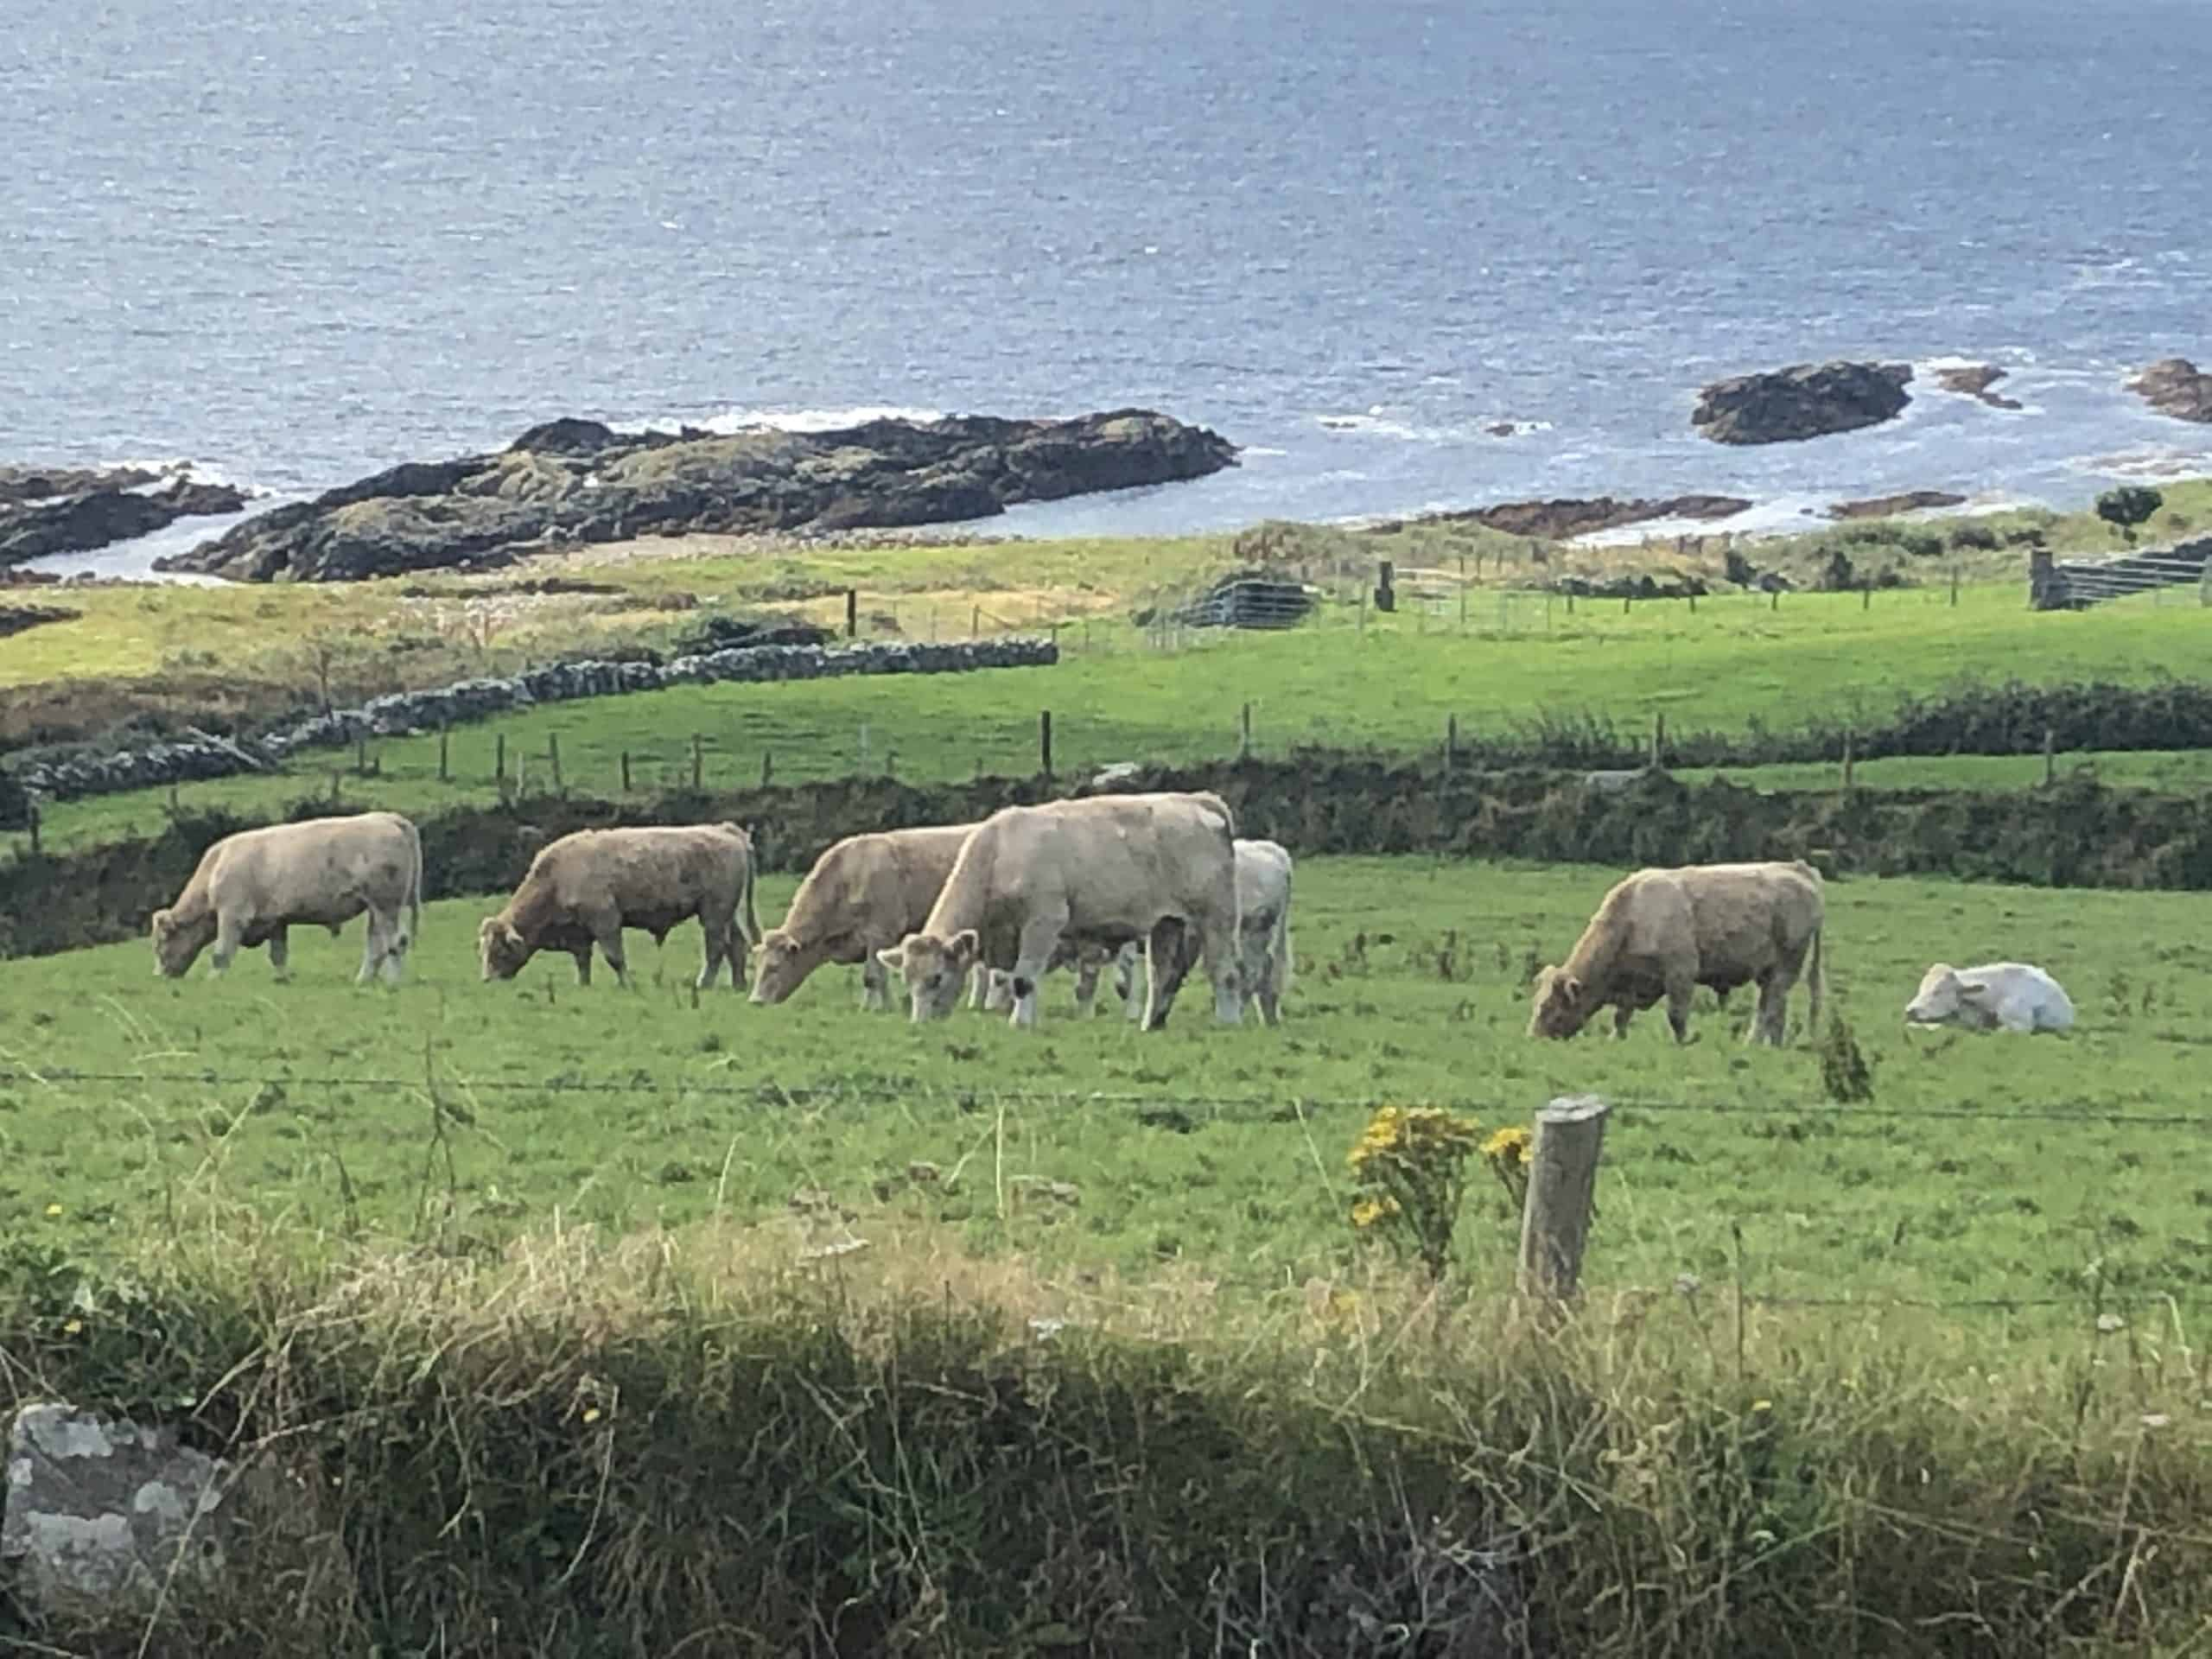 Cows grazing in a field on Dursey Island in County Cork